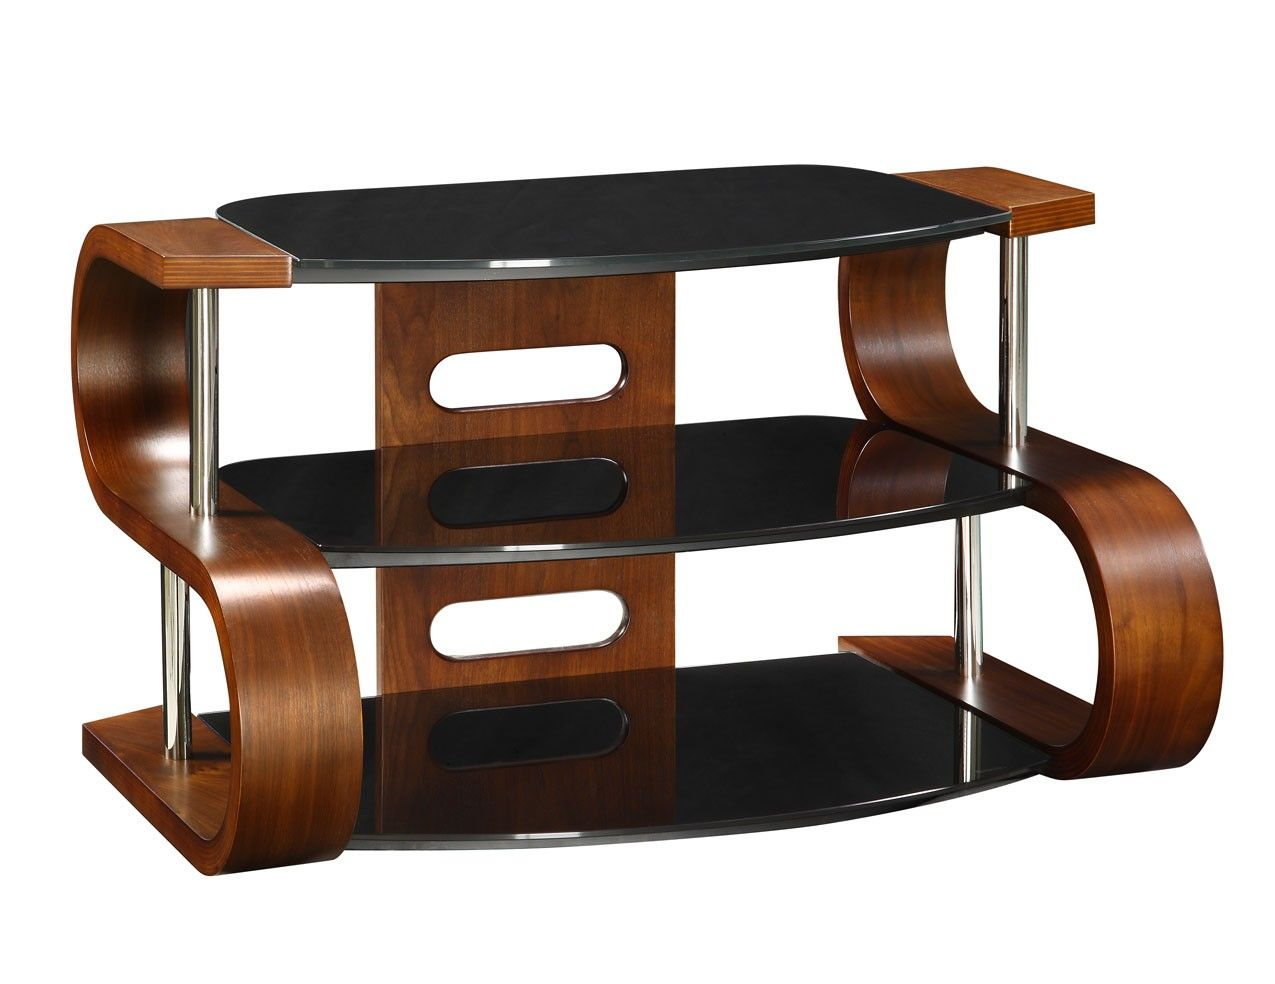 Tv Stands For 50 Flat Screens Jual Furnishings Jf203 1100 Curved Wood Walnut Tv Stand 40 50